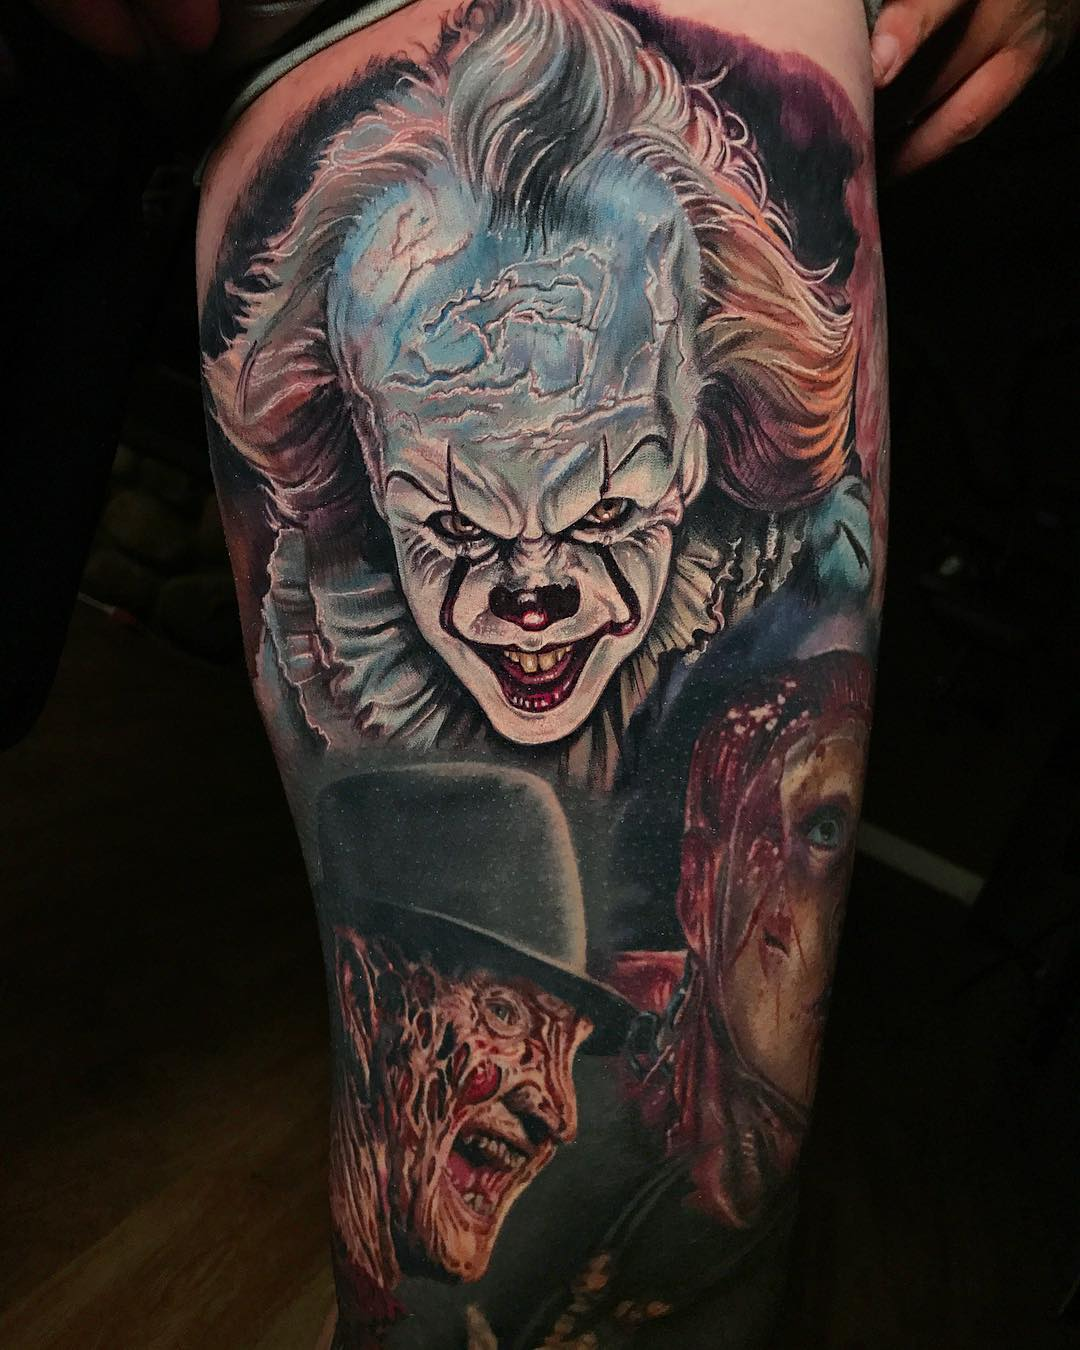 Pennywise Band Tattoo Designs